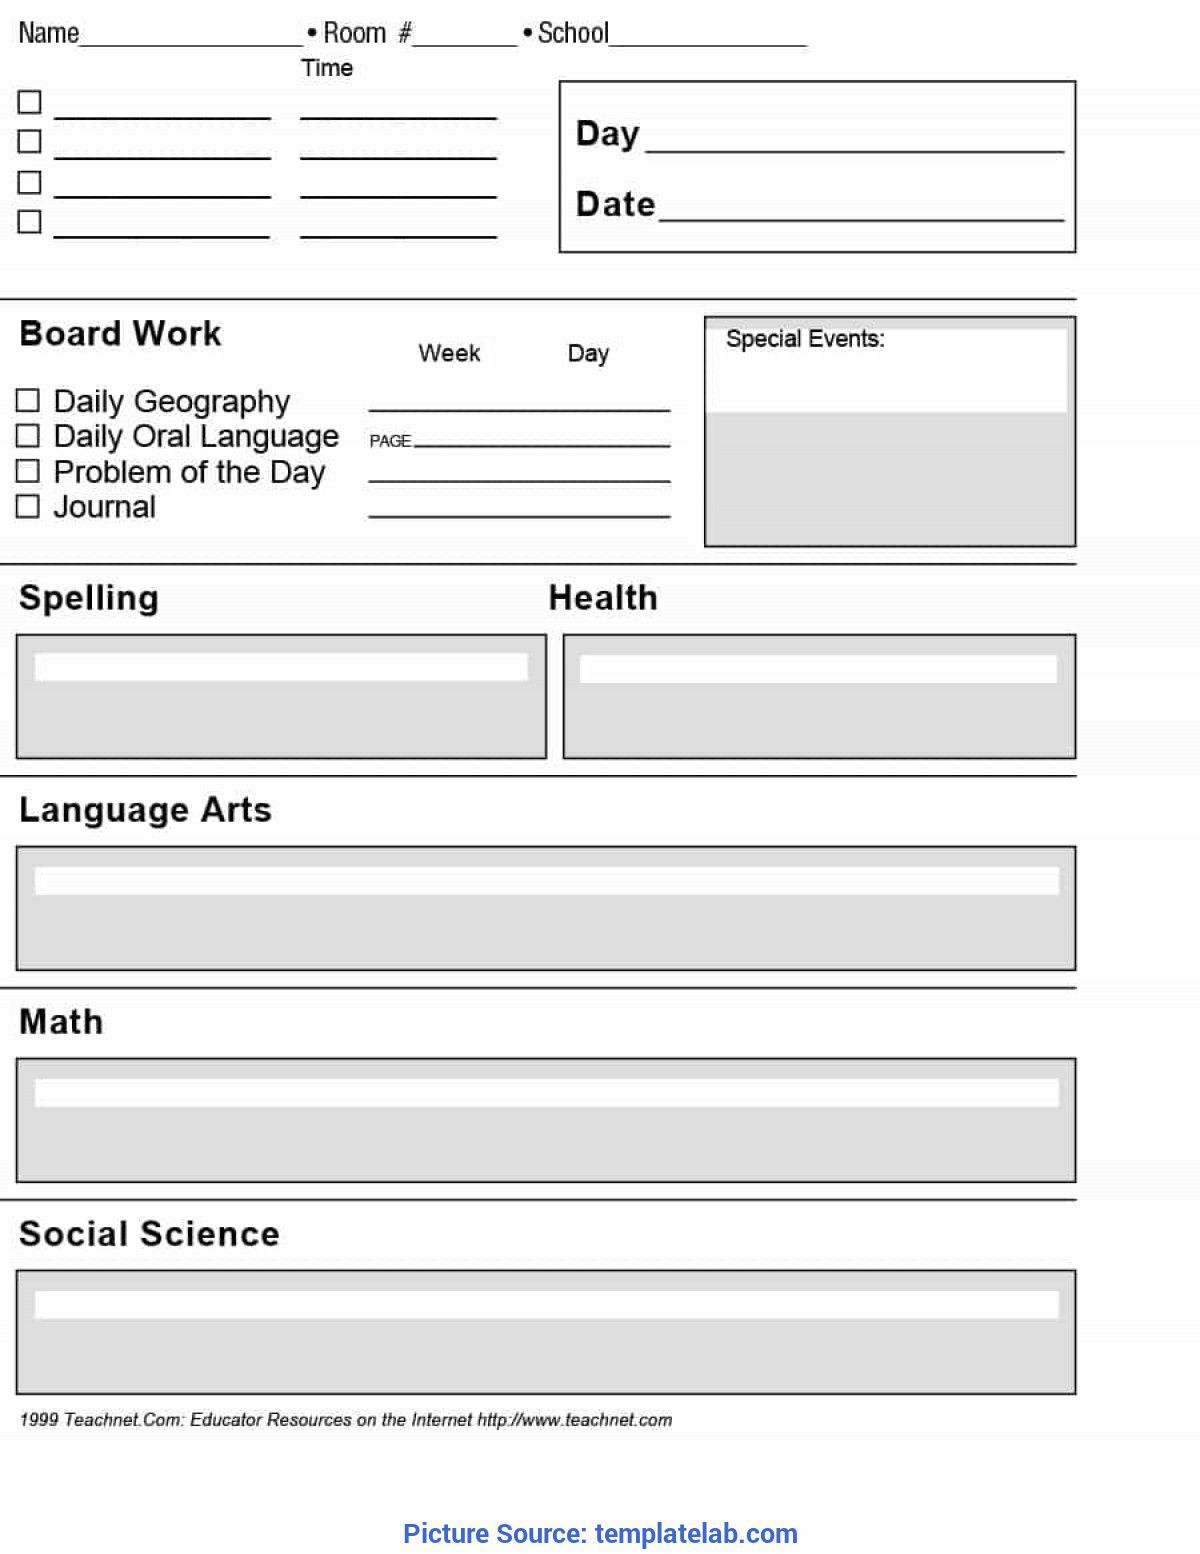 002 Archaicawful Free Unit Lesson Plan Template Idea Full